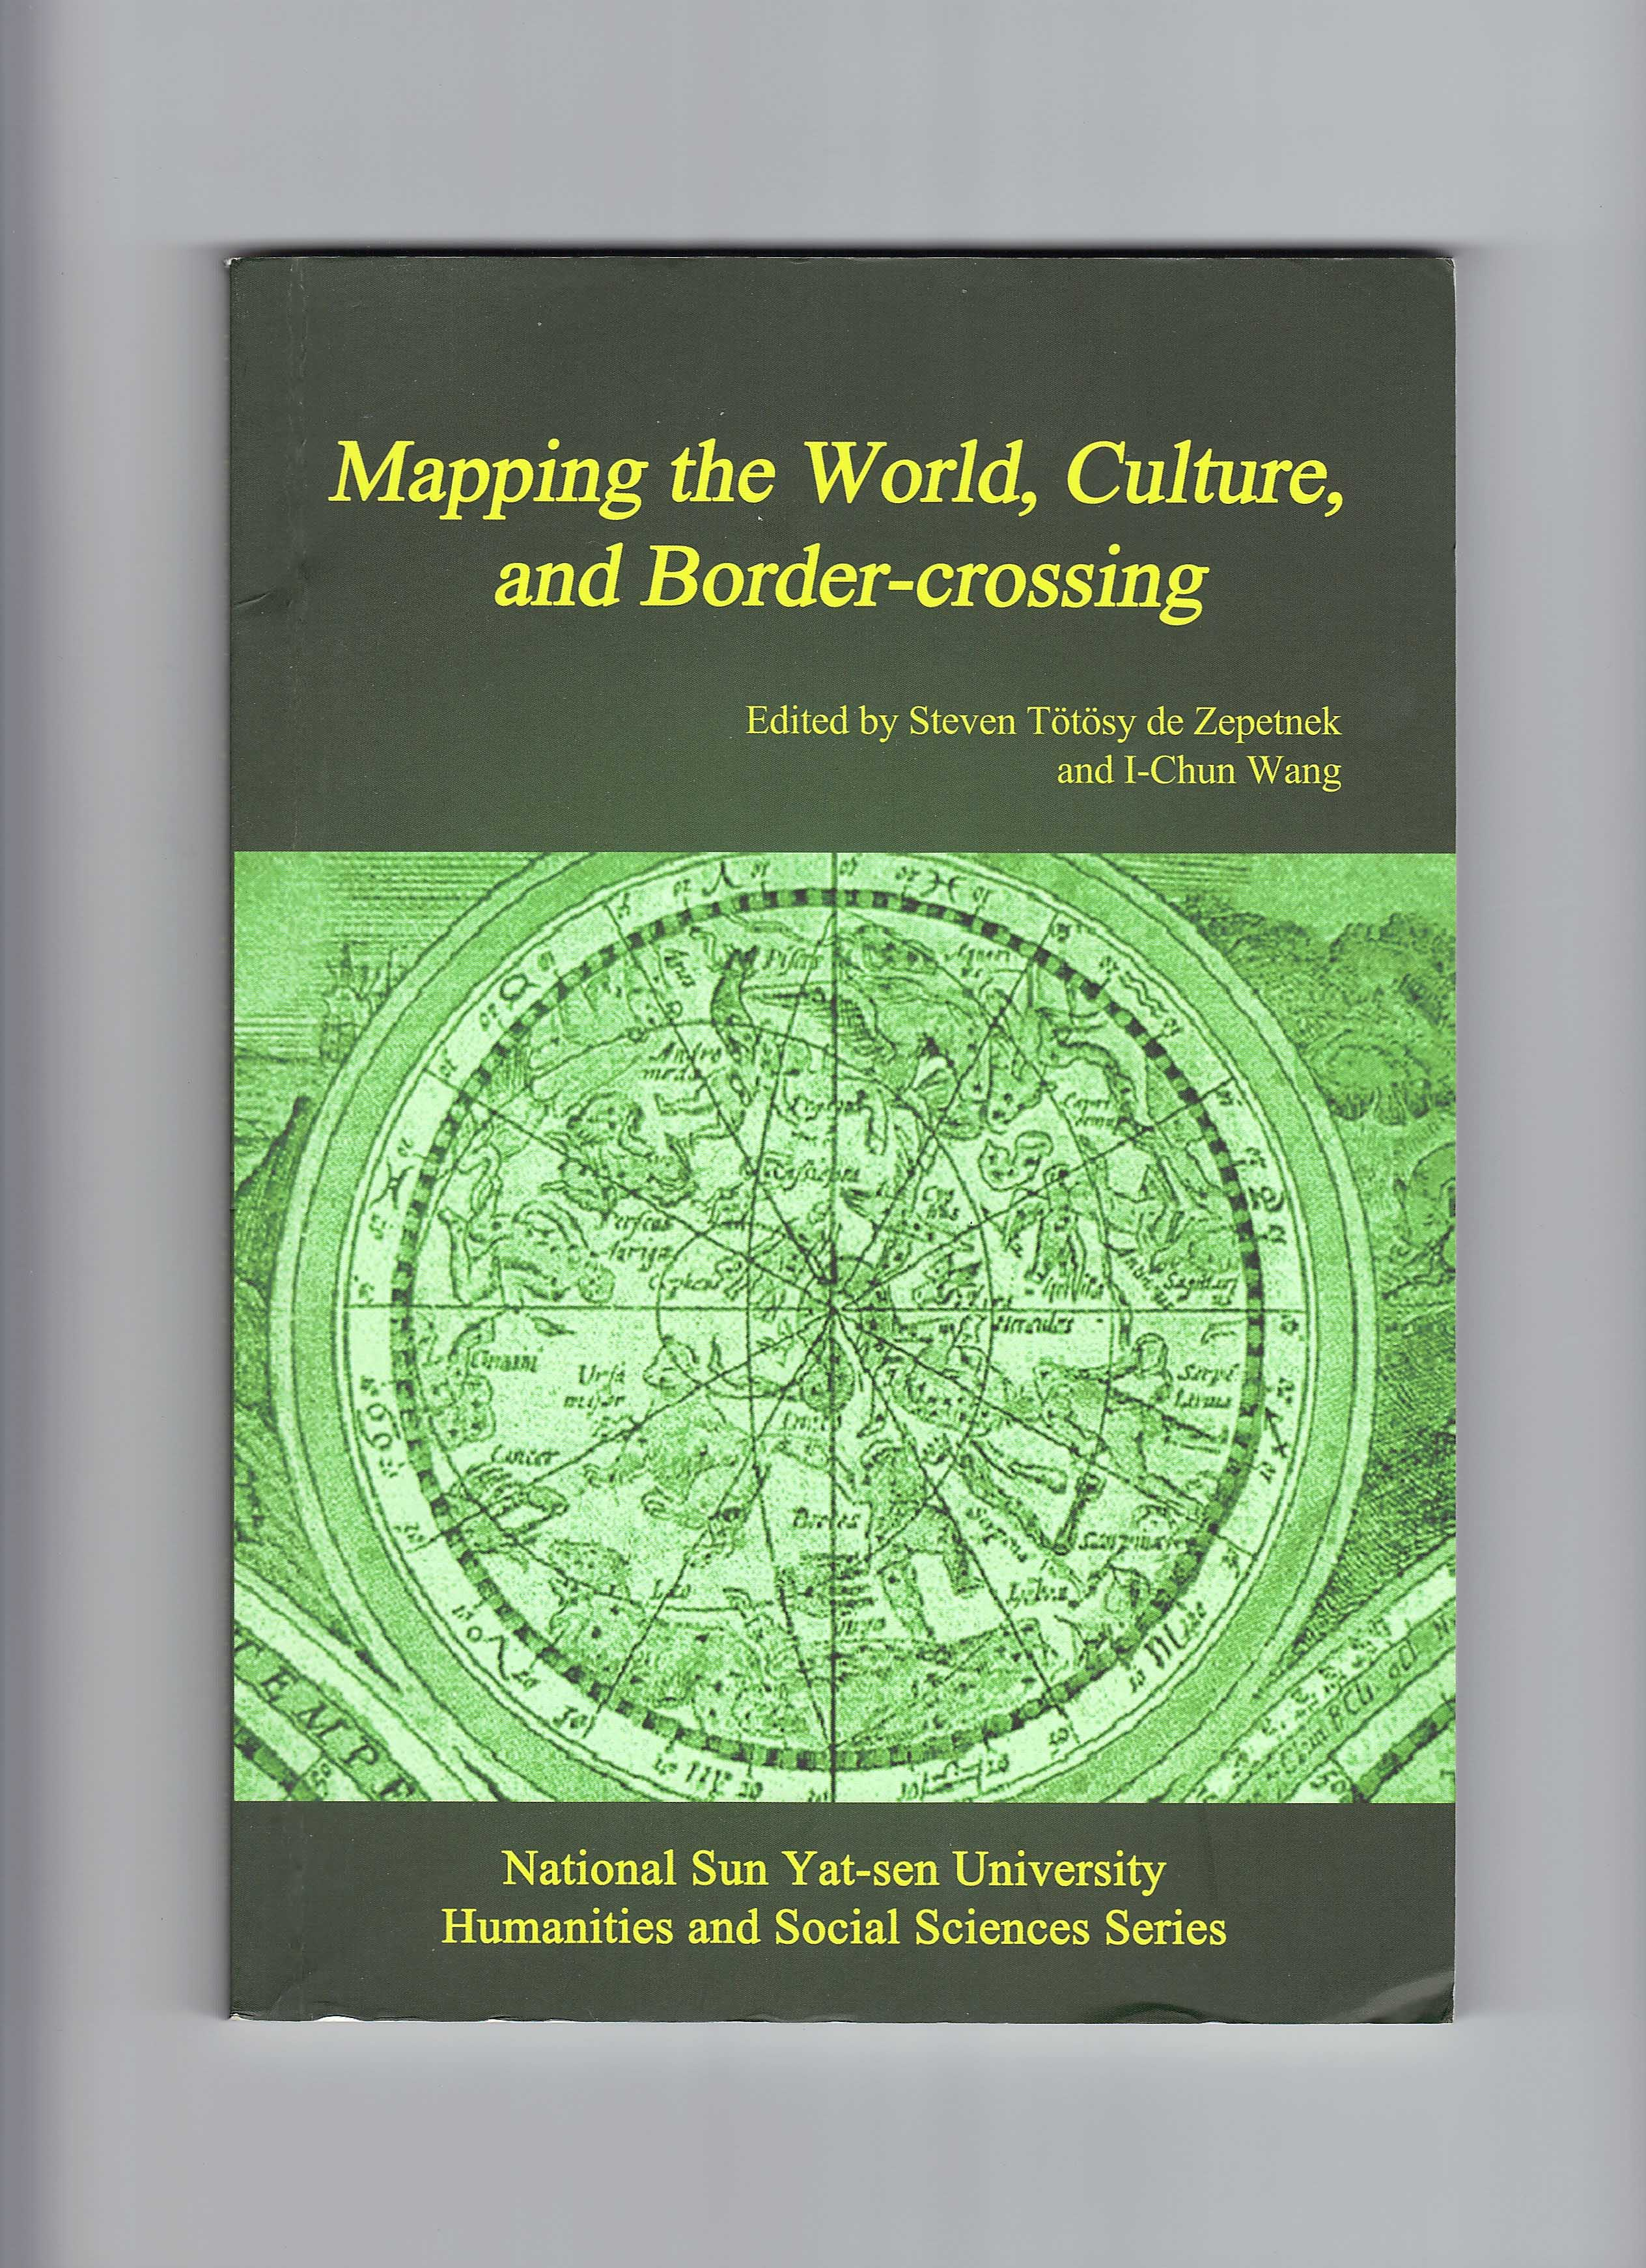 Mapping the World, Culture, and Border-crossing. Ed. Steven T�t�sy de Zepetnek and I-Chun Wang. Kaohsiung: National Sun Yat-sen University Press, 2010.